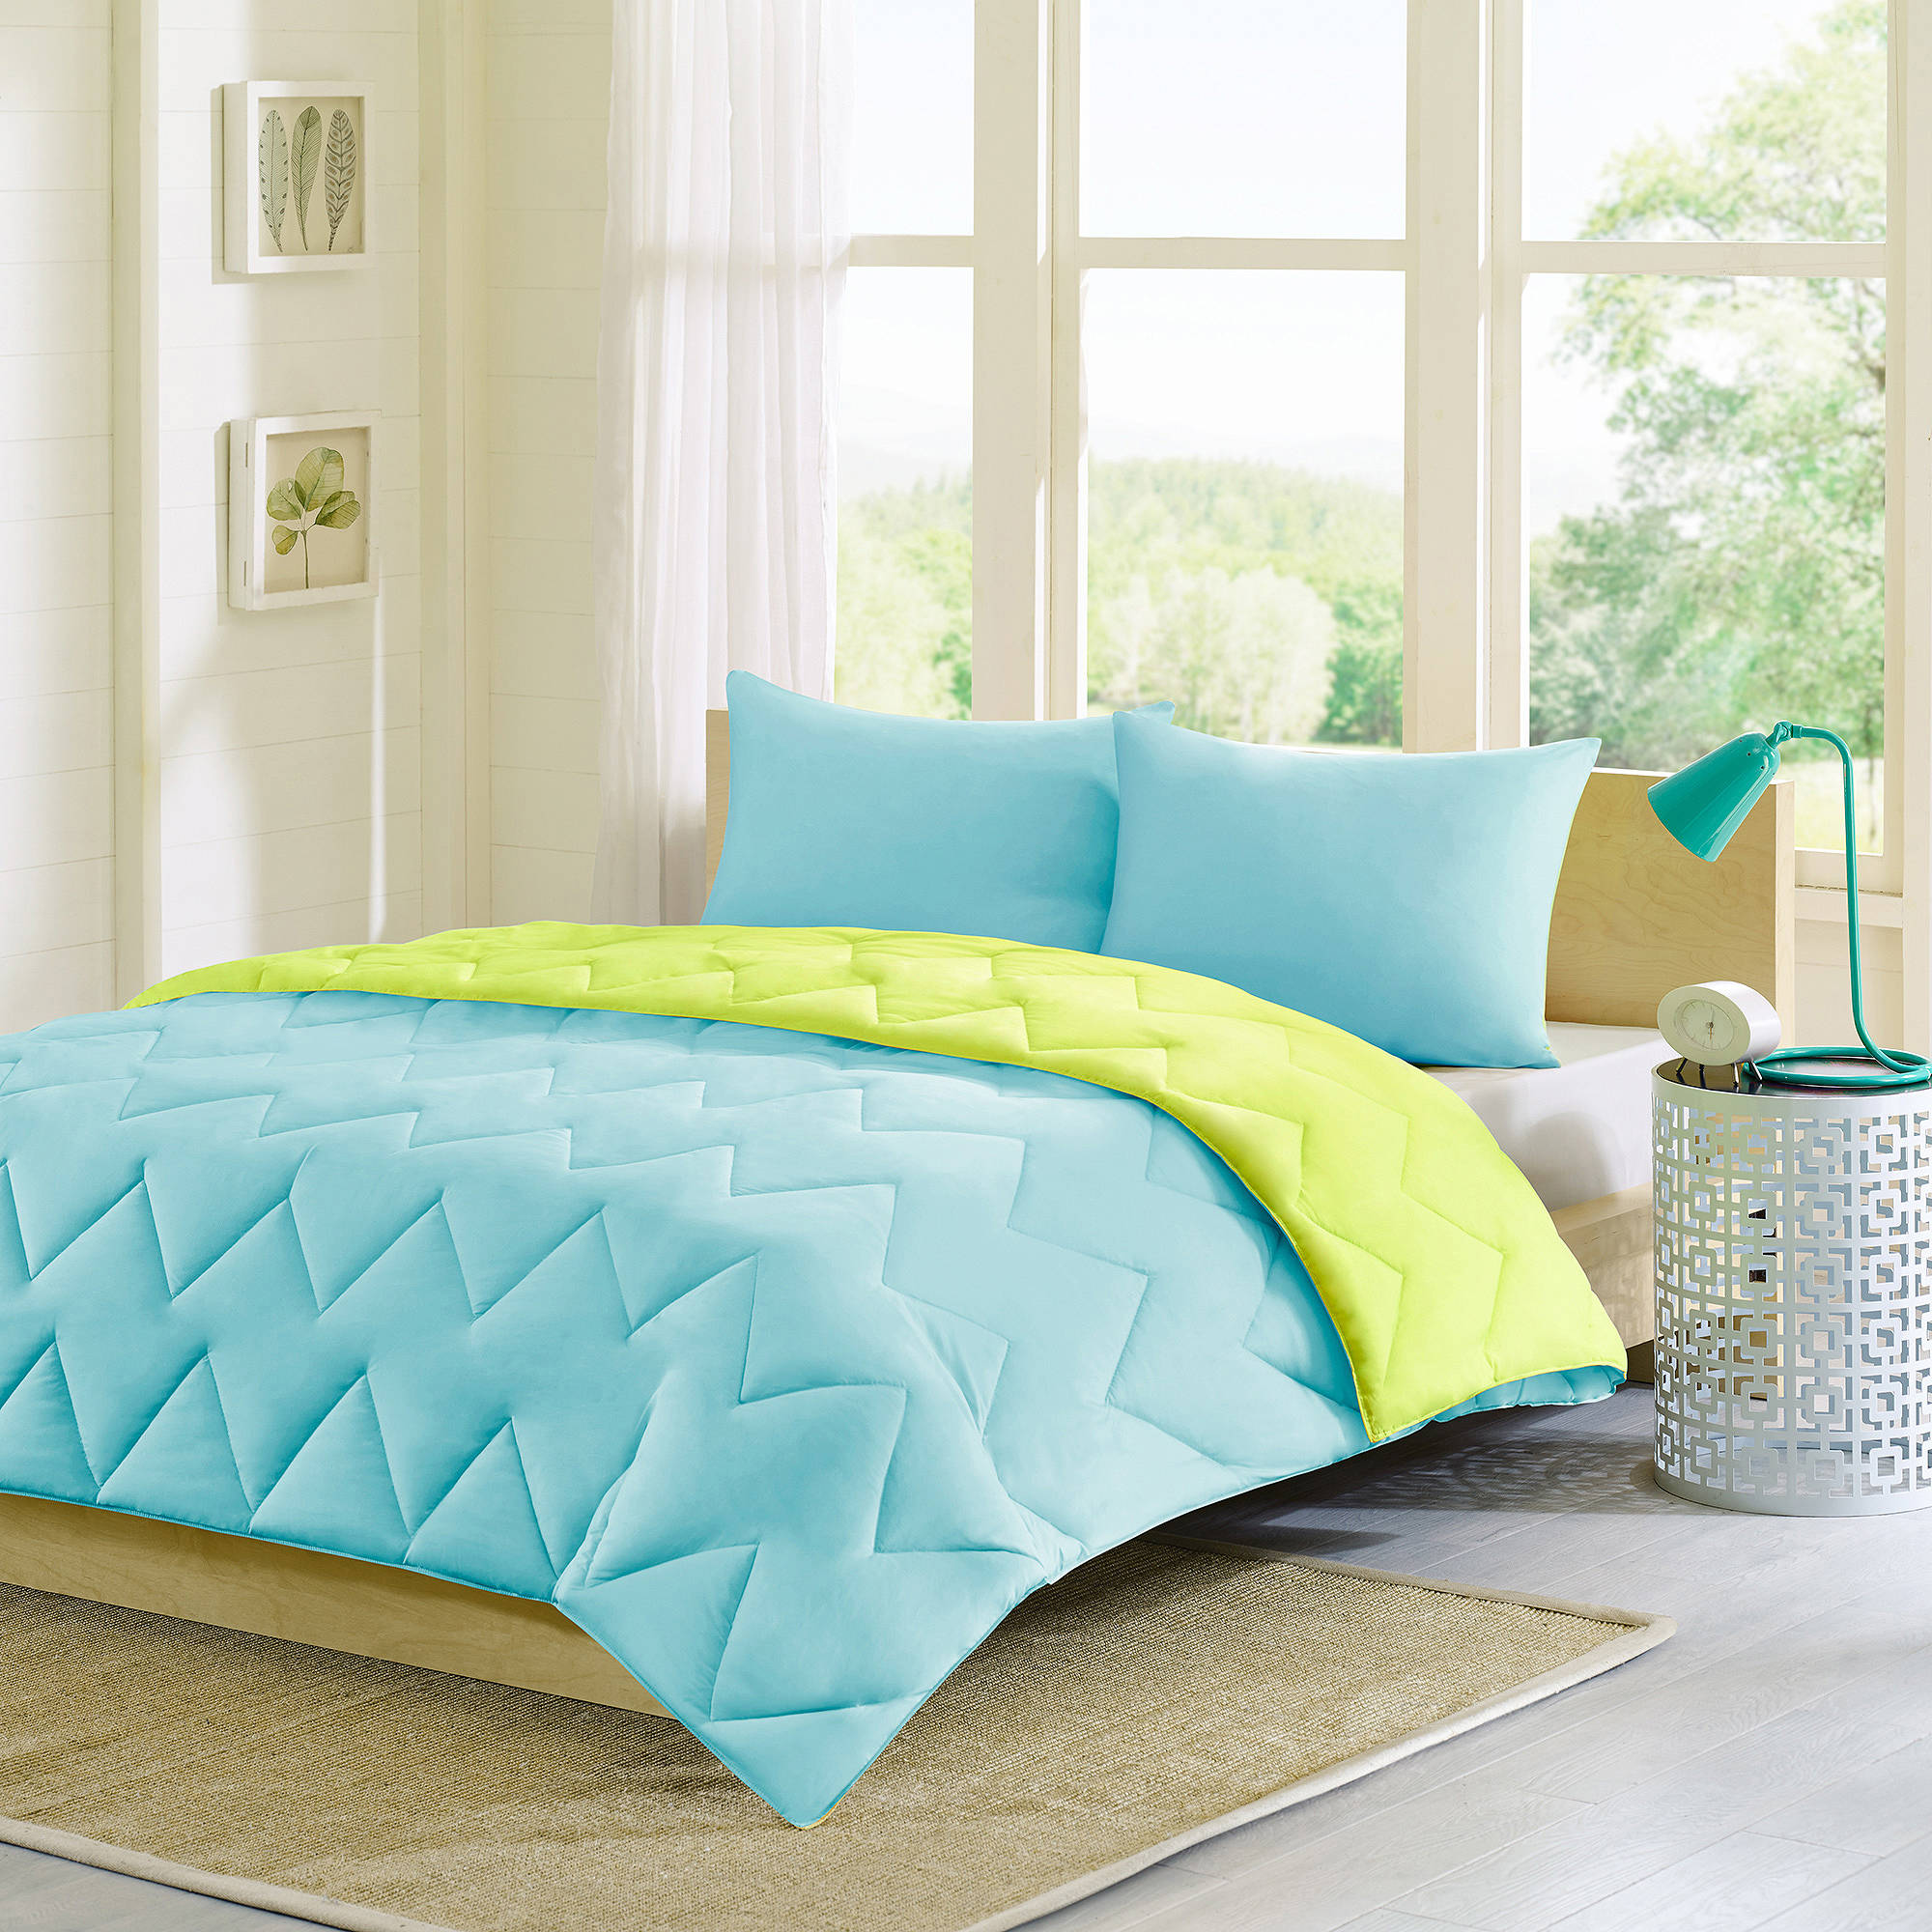 in trend encouragement imgid bed for teen comforter bedding as teenage tiffany aqua twin blue styles nod best furniture xl sets and bedroom stunning girl